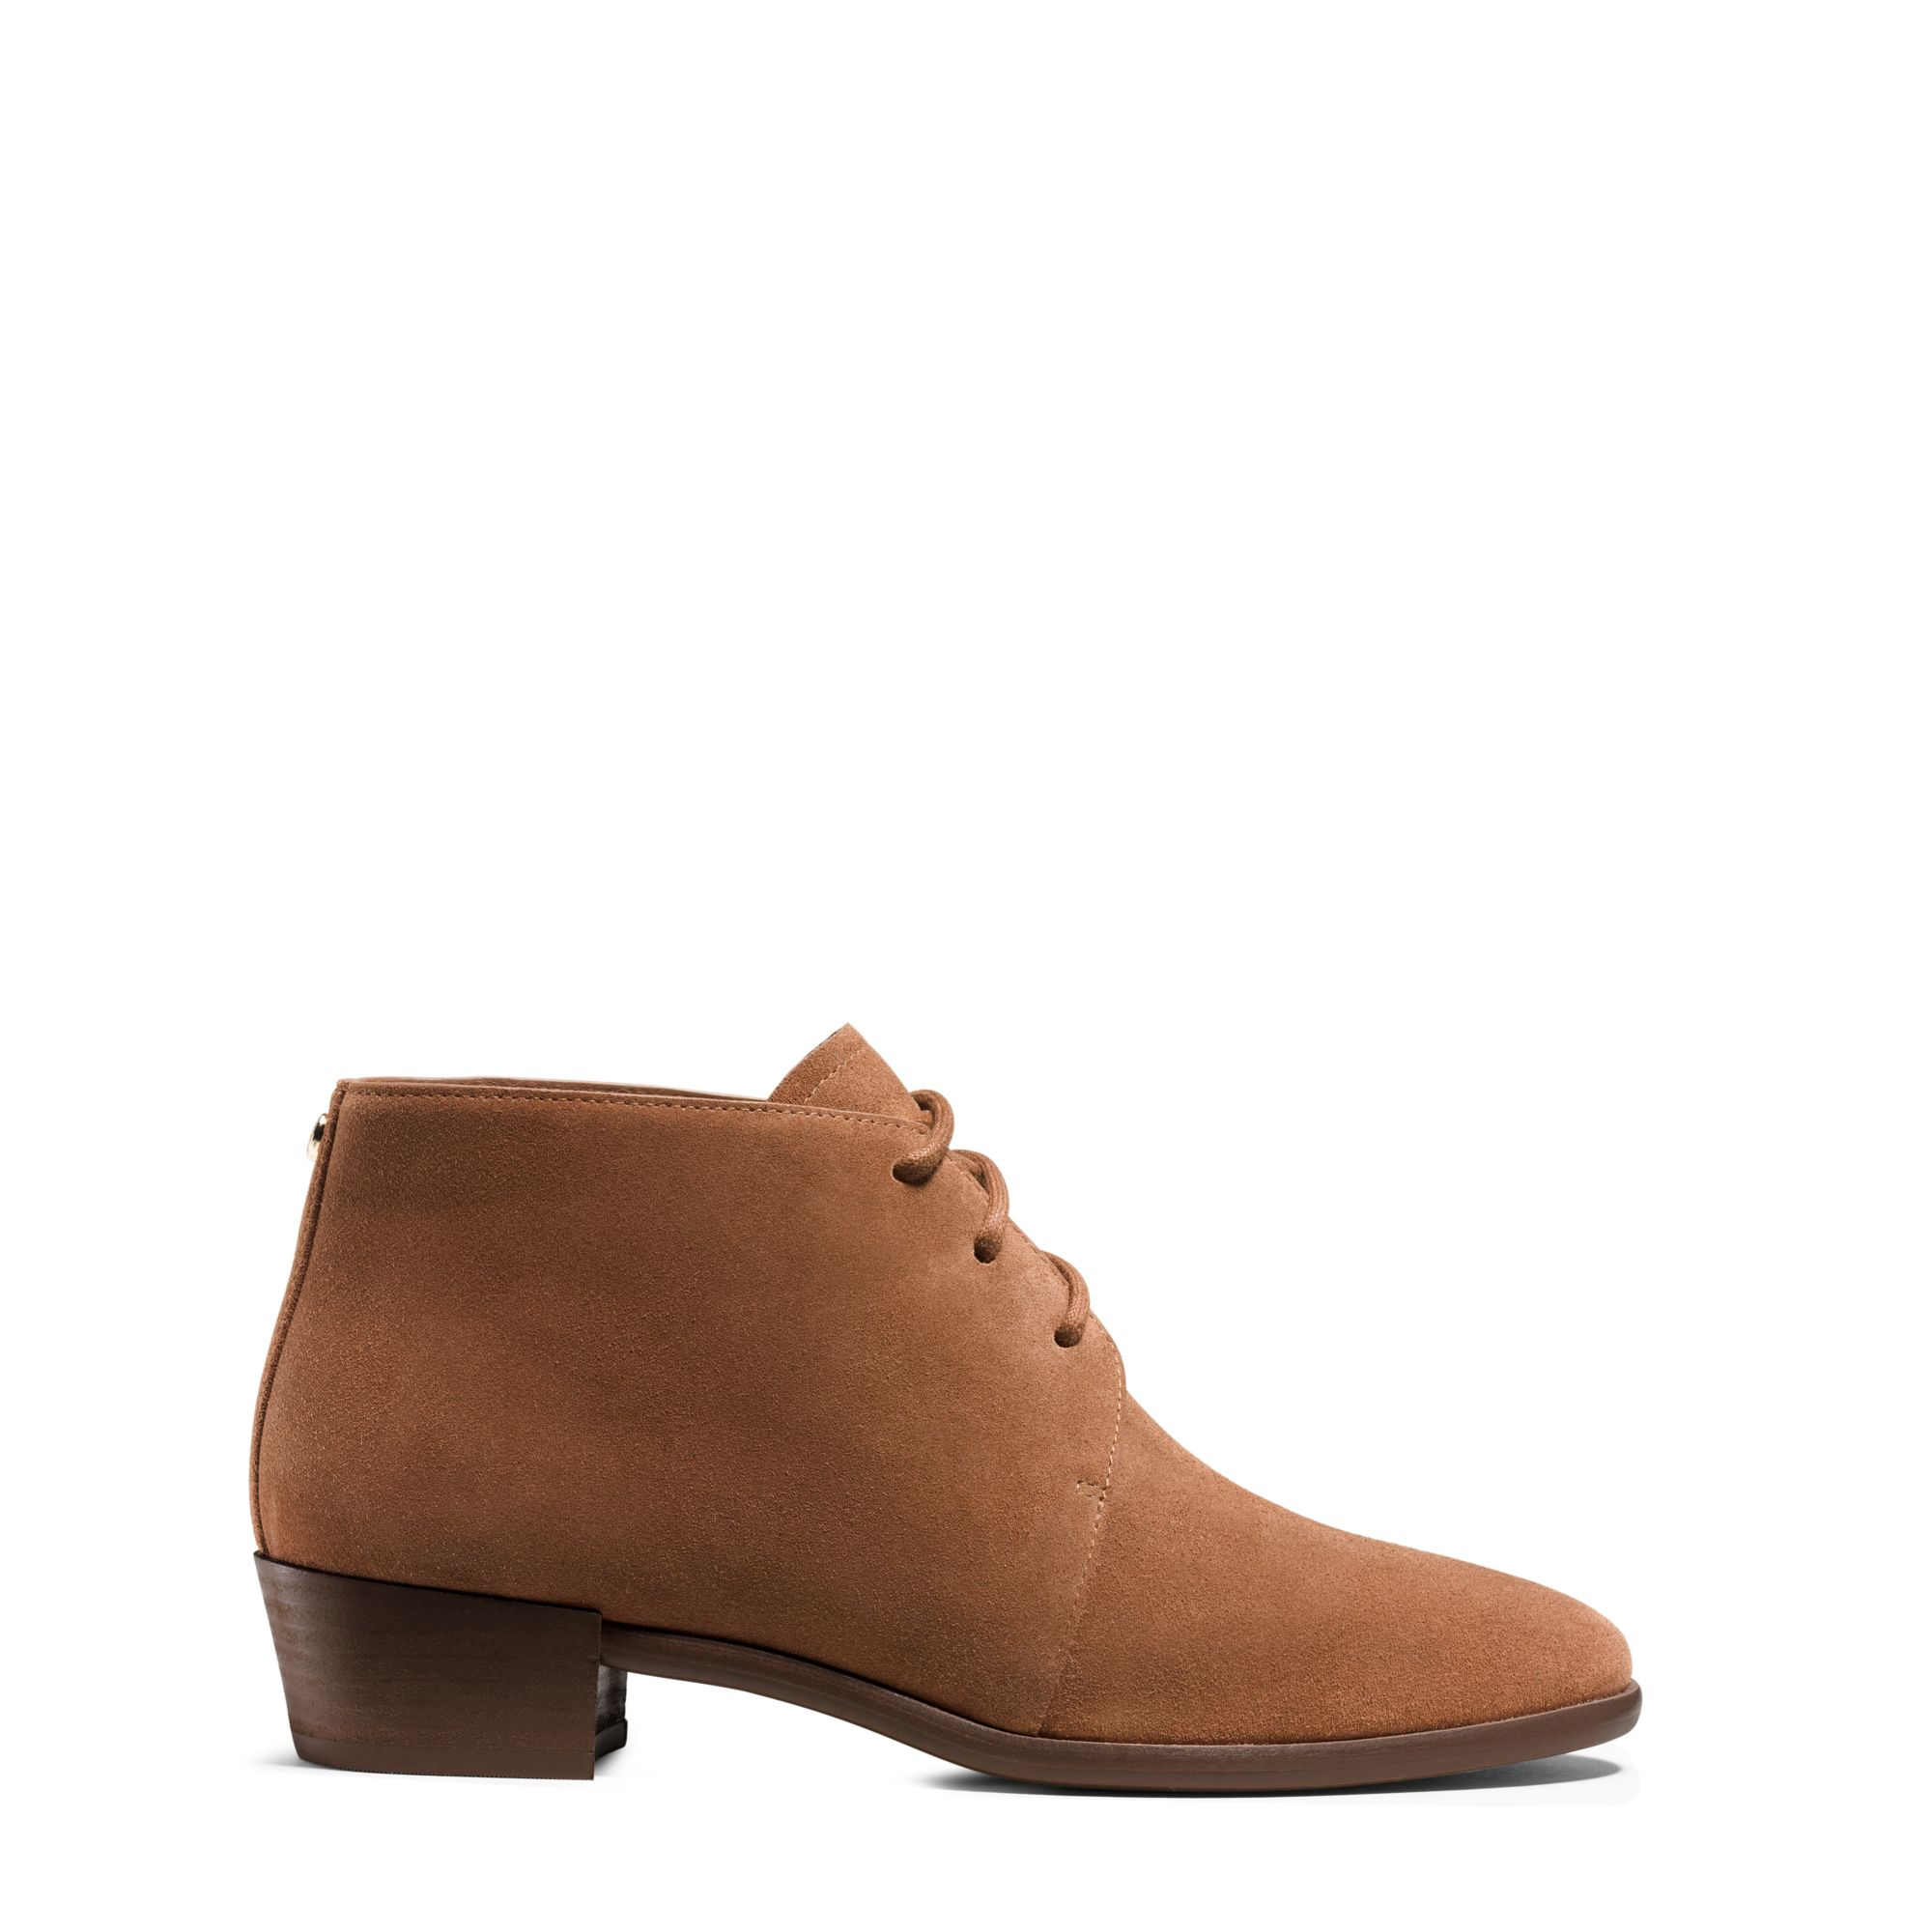 michael kors suede ankle boot in brown lyst